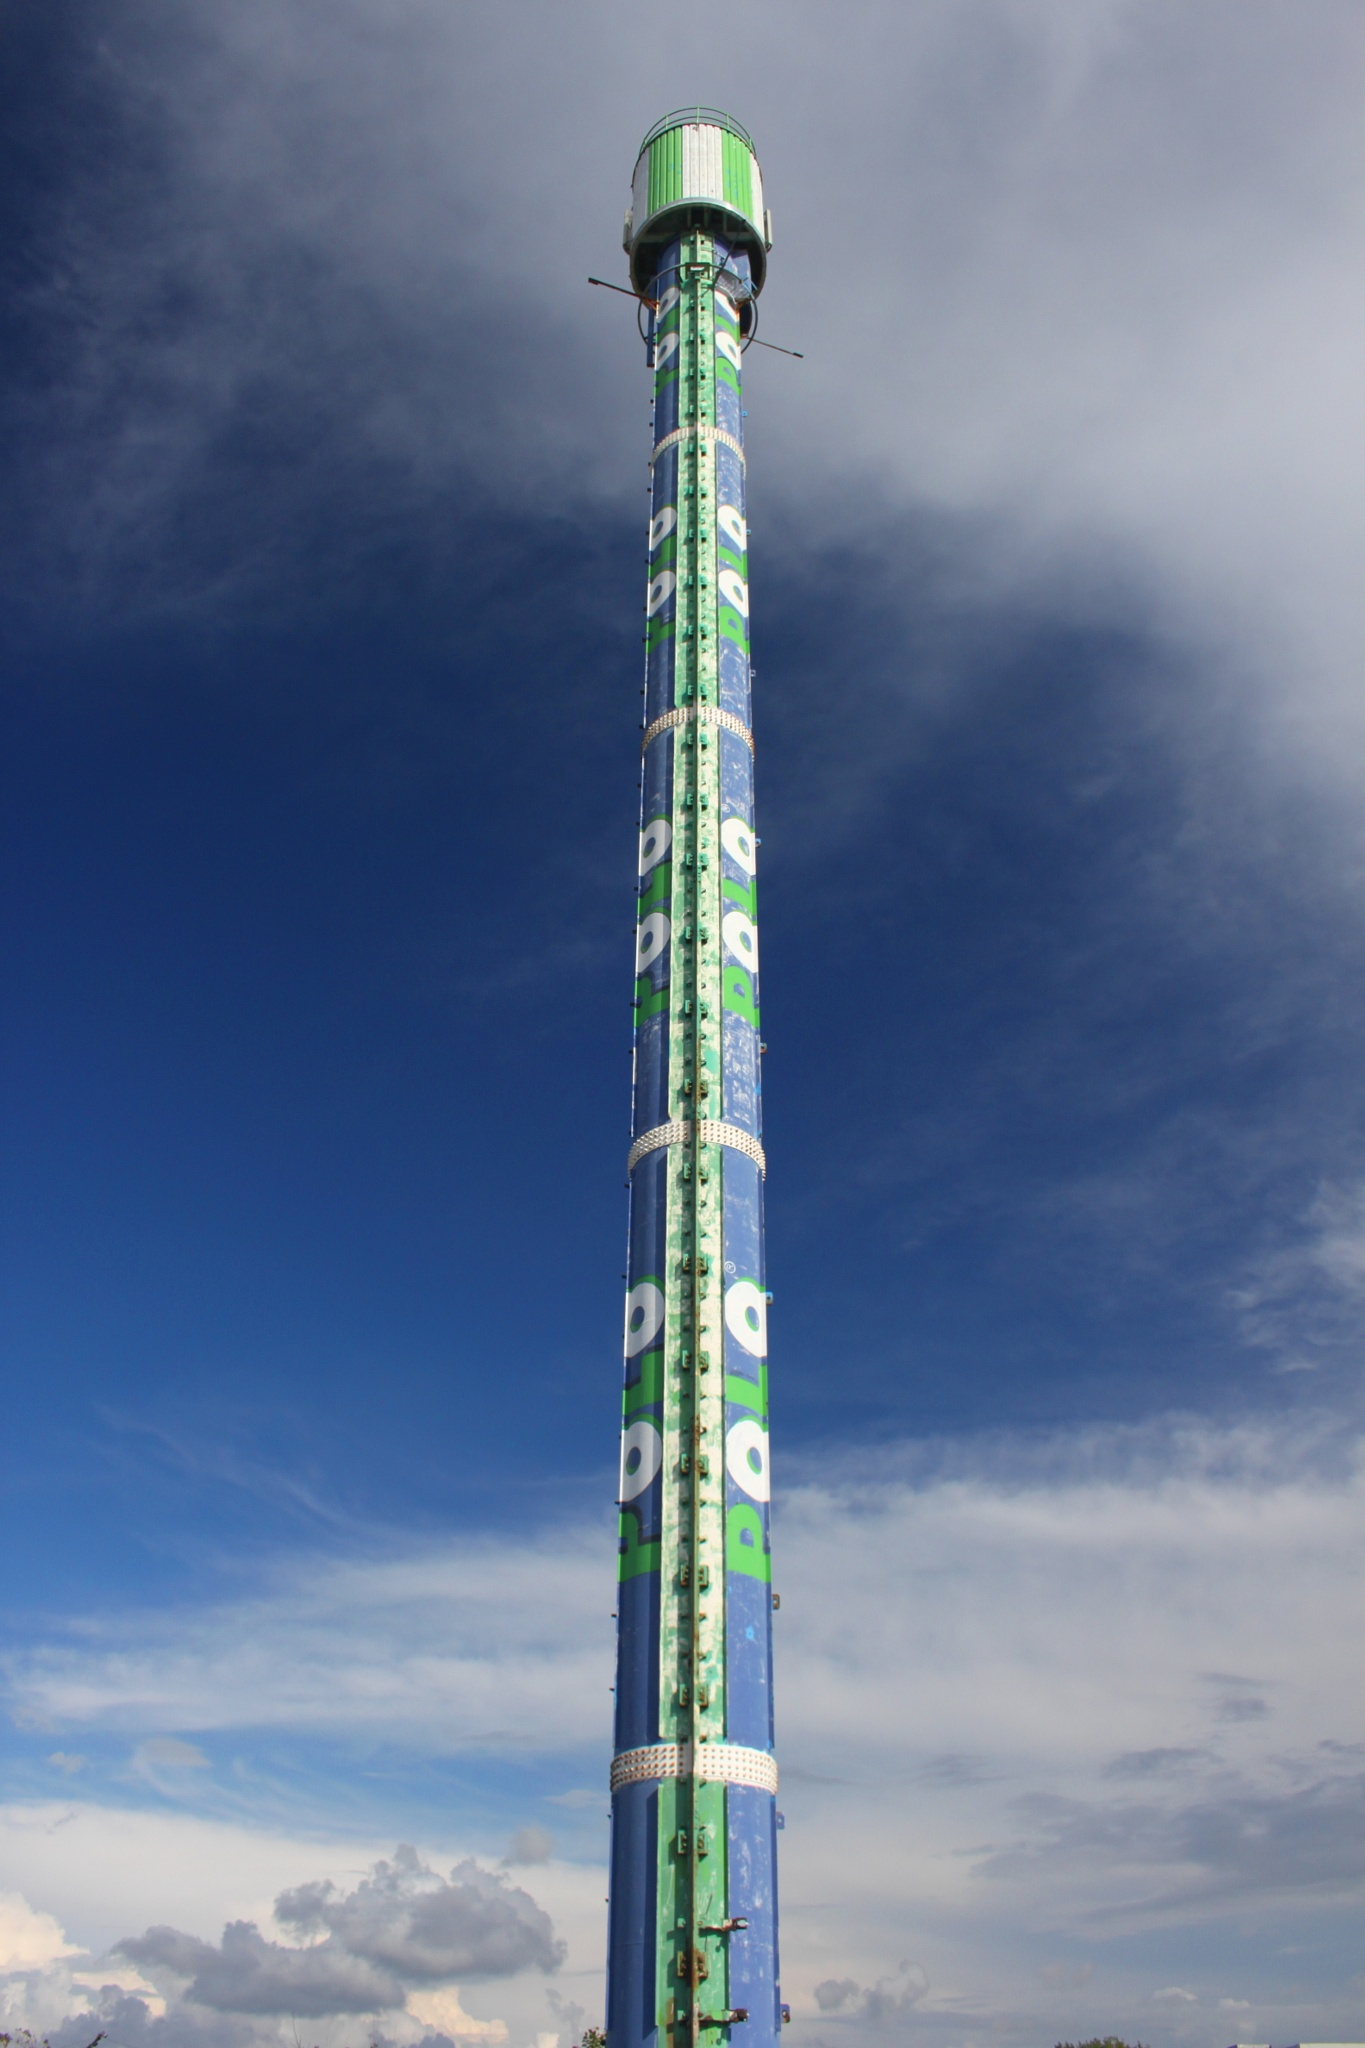 Tube tower by Phil Downie